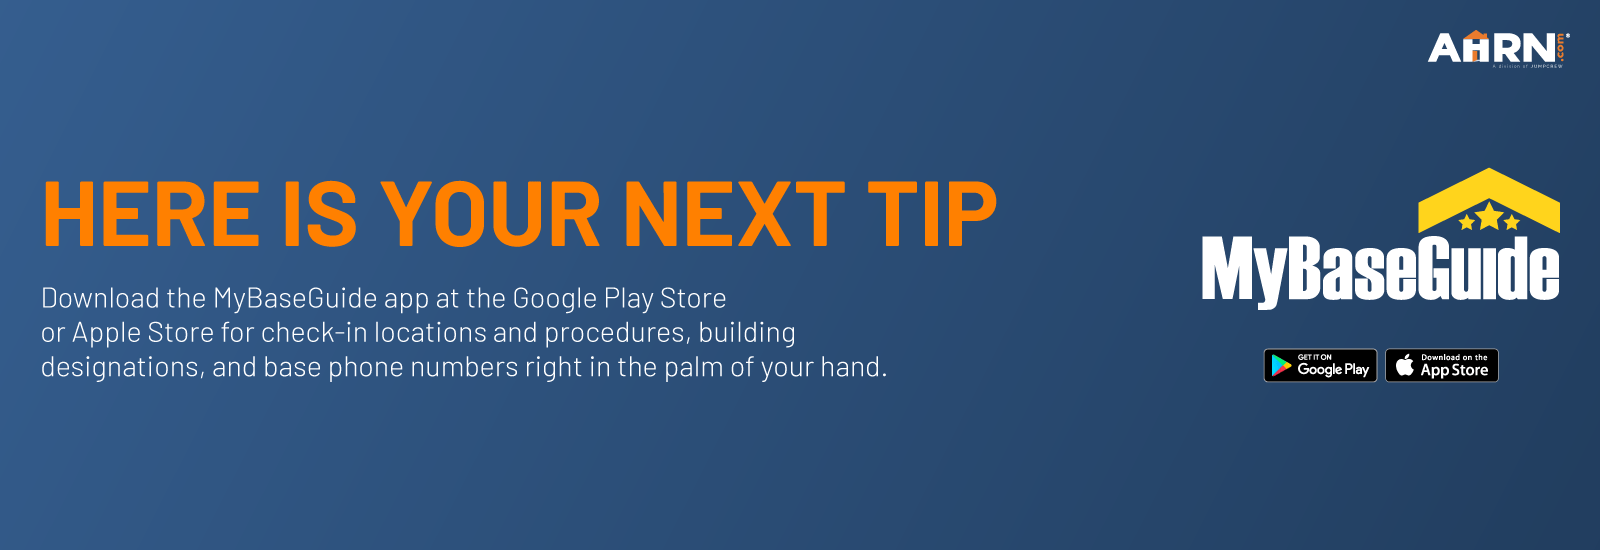 Here is your next tip! Download the MyBaseGuide app at the Google Play Store or Apple Store for check-in locations and procedures, building designations, and base phone numbers right in the palm of your hand.